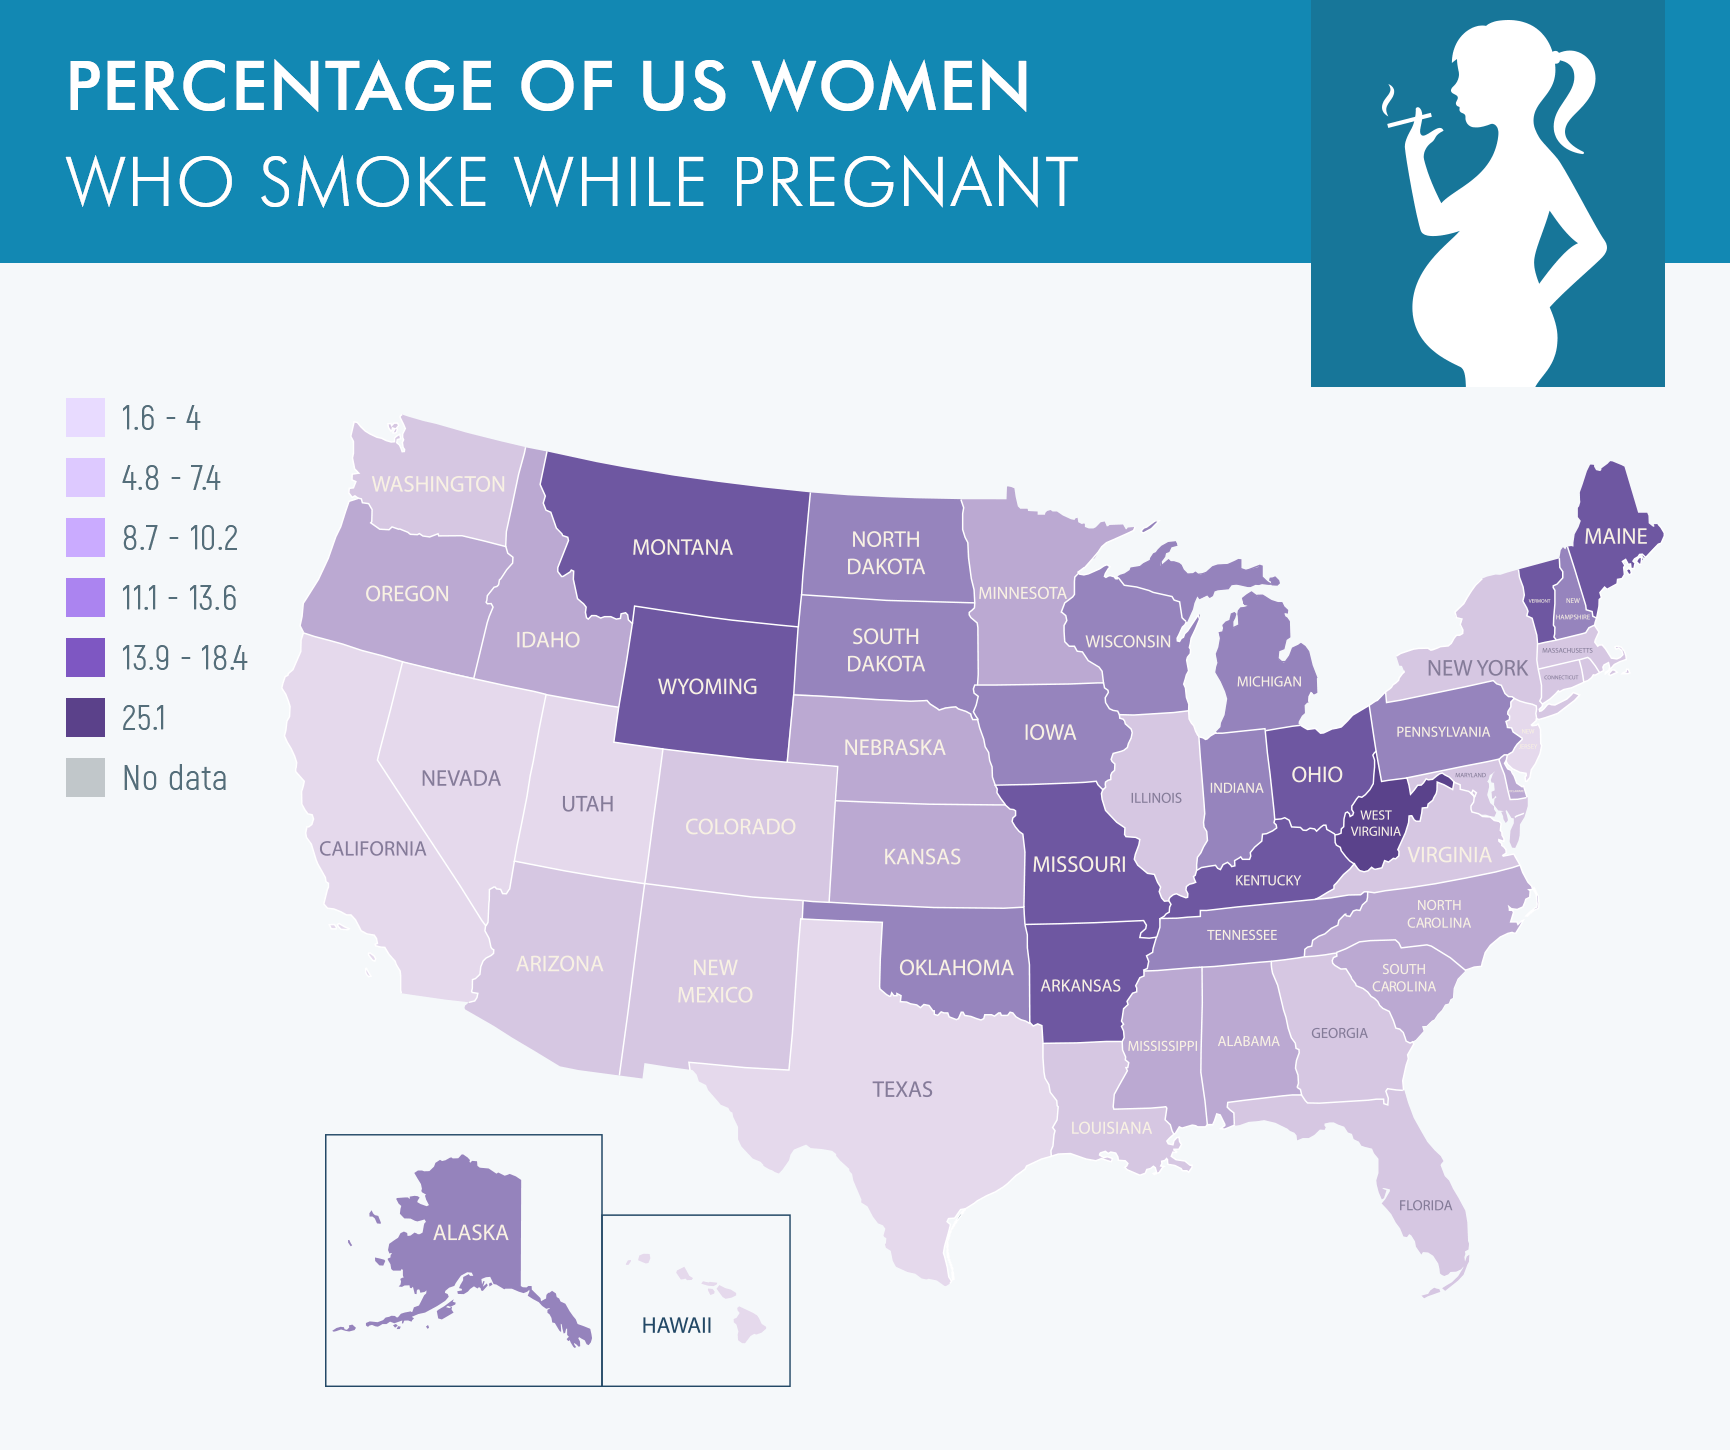 Percentage of pregnant US women